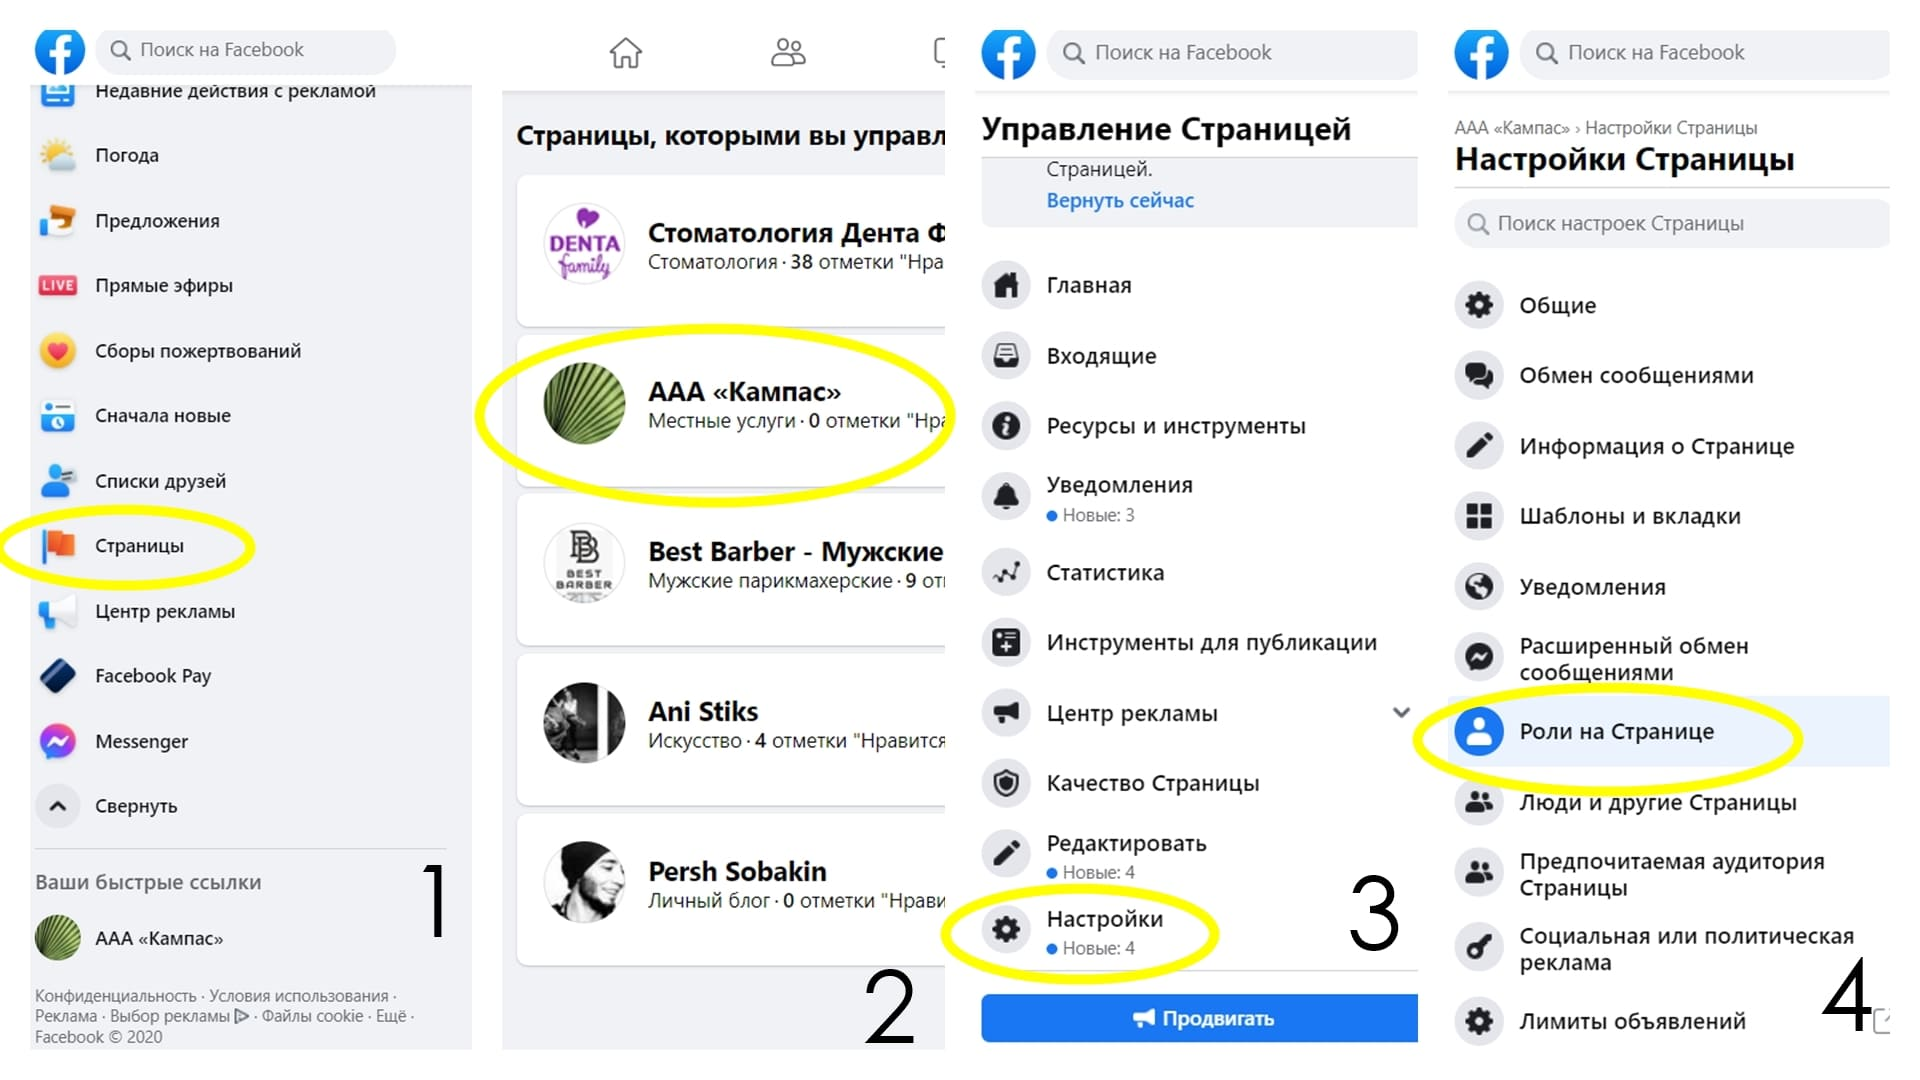 How to see your Facebook group admin